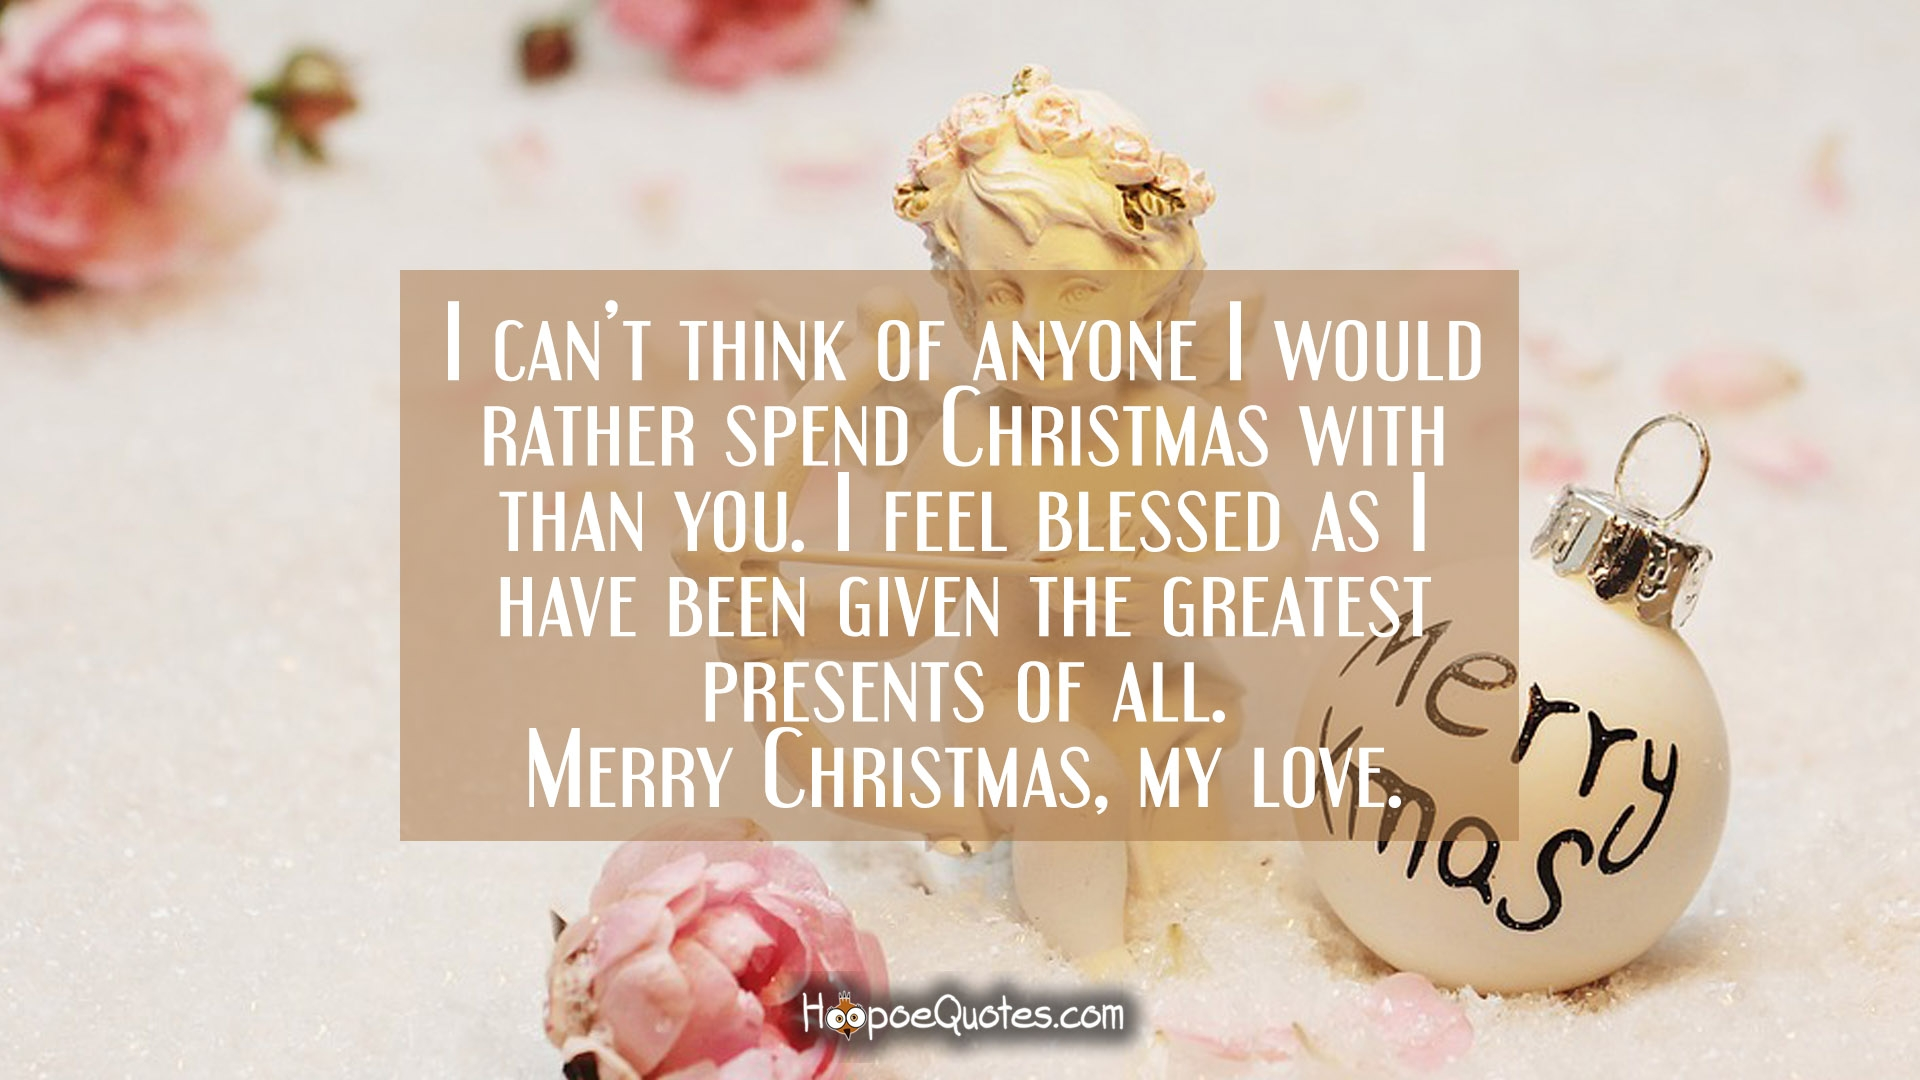 Christmas Love Messages - HoopoeQuotes